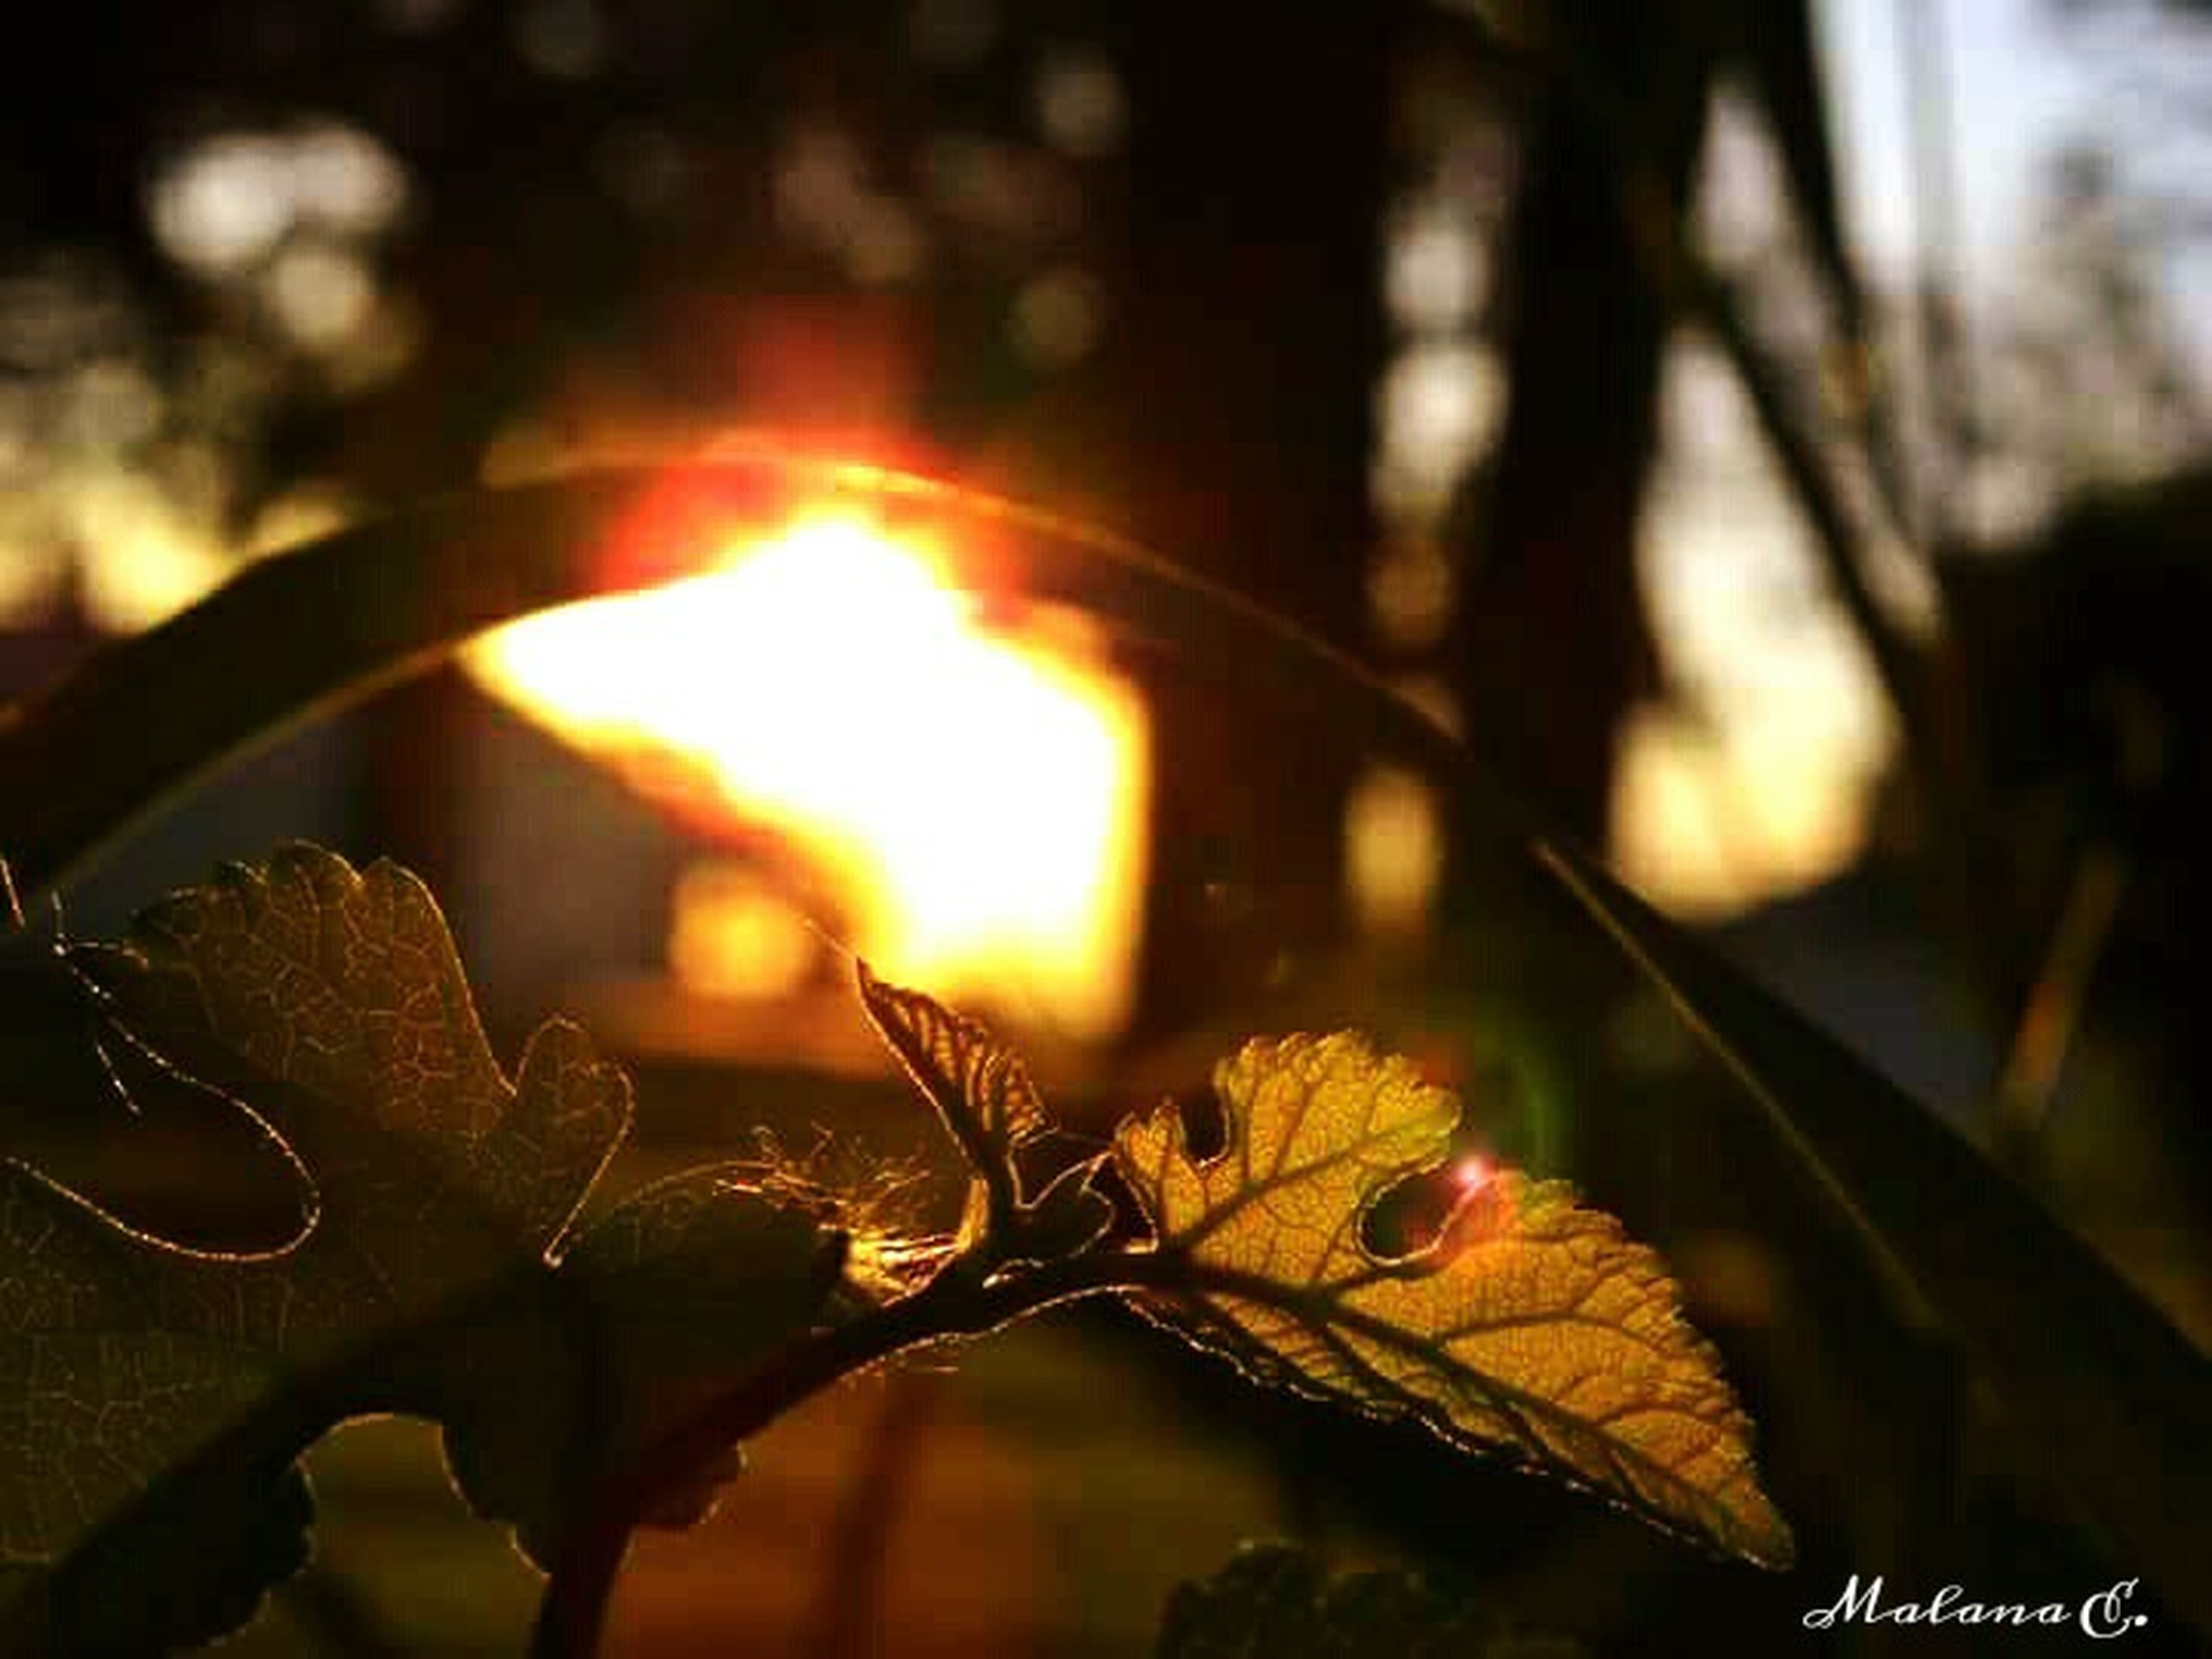 focus on foreground, close-up, orange color, selective focus, leaf, sunset, sunlight, flame, nature, outdoors, no people, glowing, burning, metal, fire - natural phenomenon, dry, sun, autumn, plant, silhouette